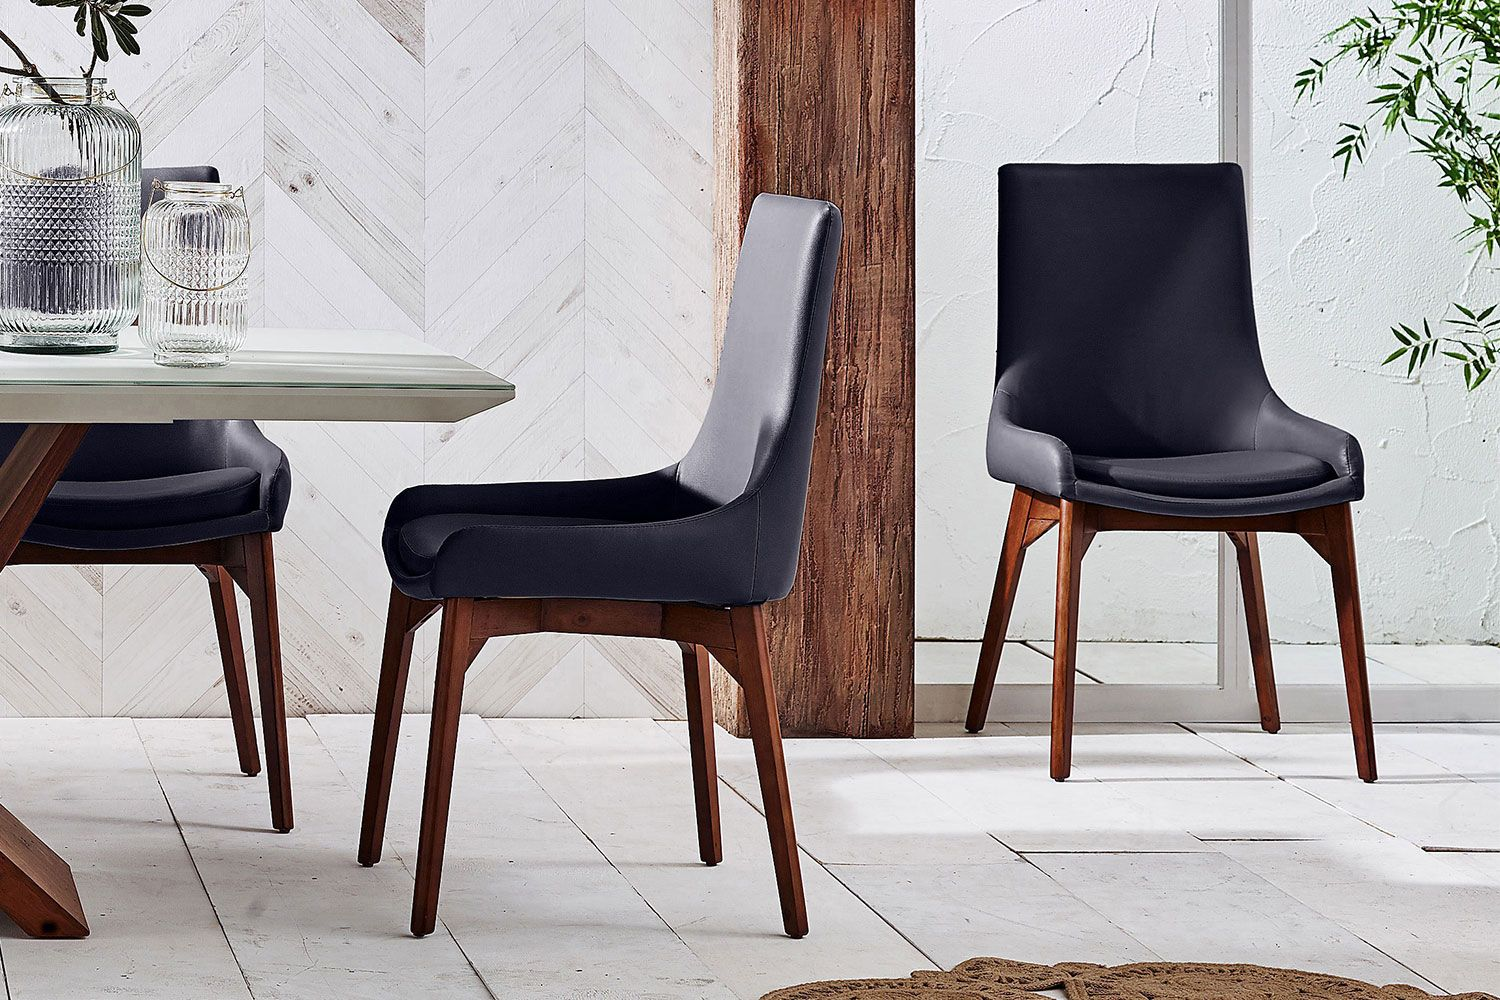 Bold And Modern With Strong Timber Legs The Moderna Dining Chair